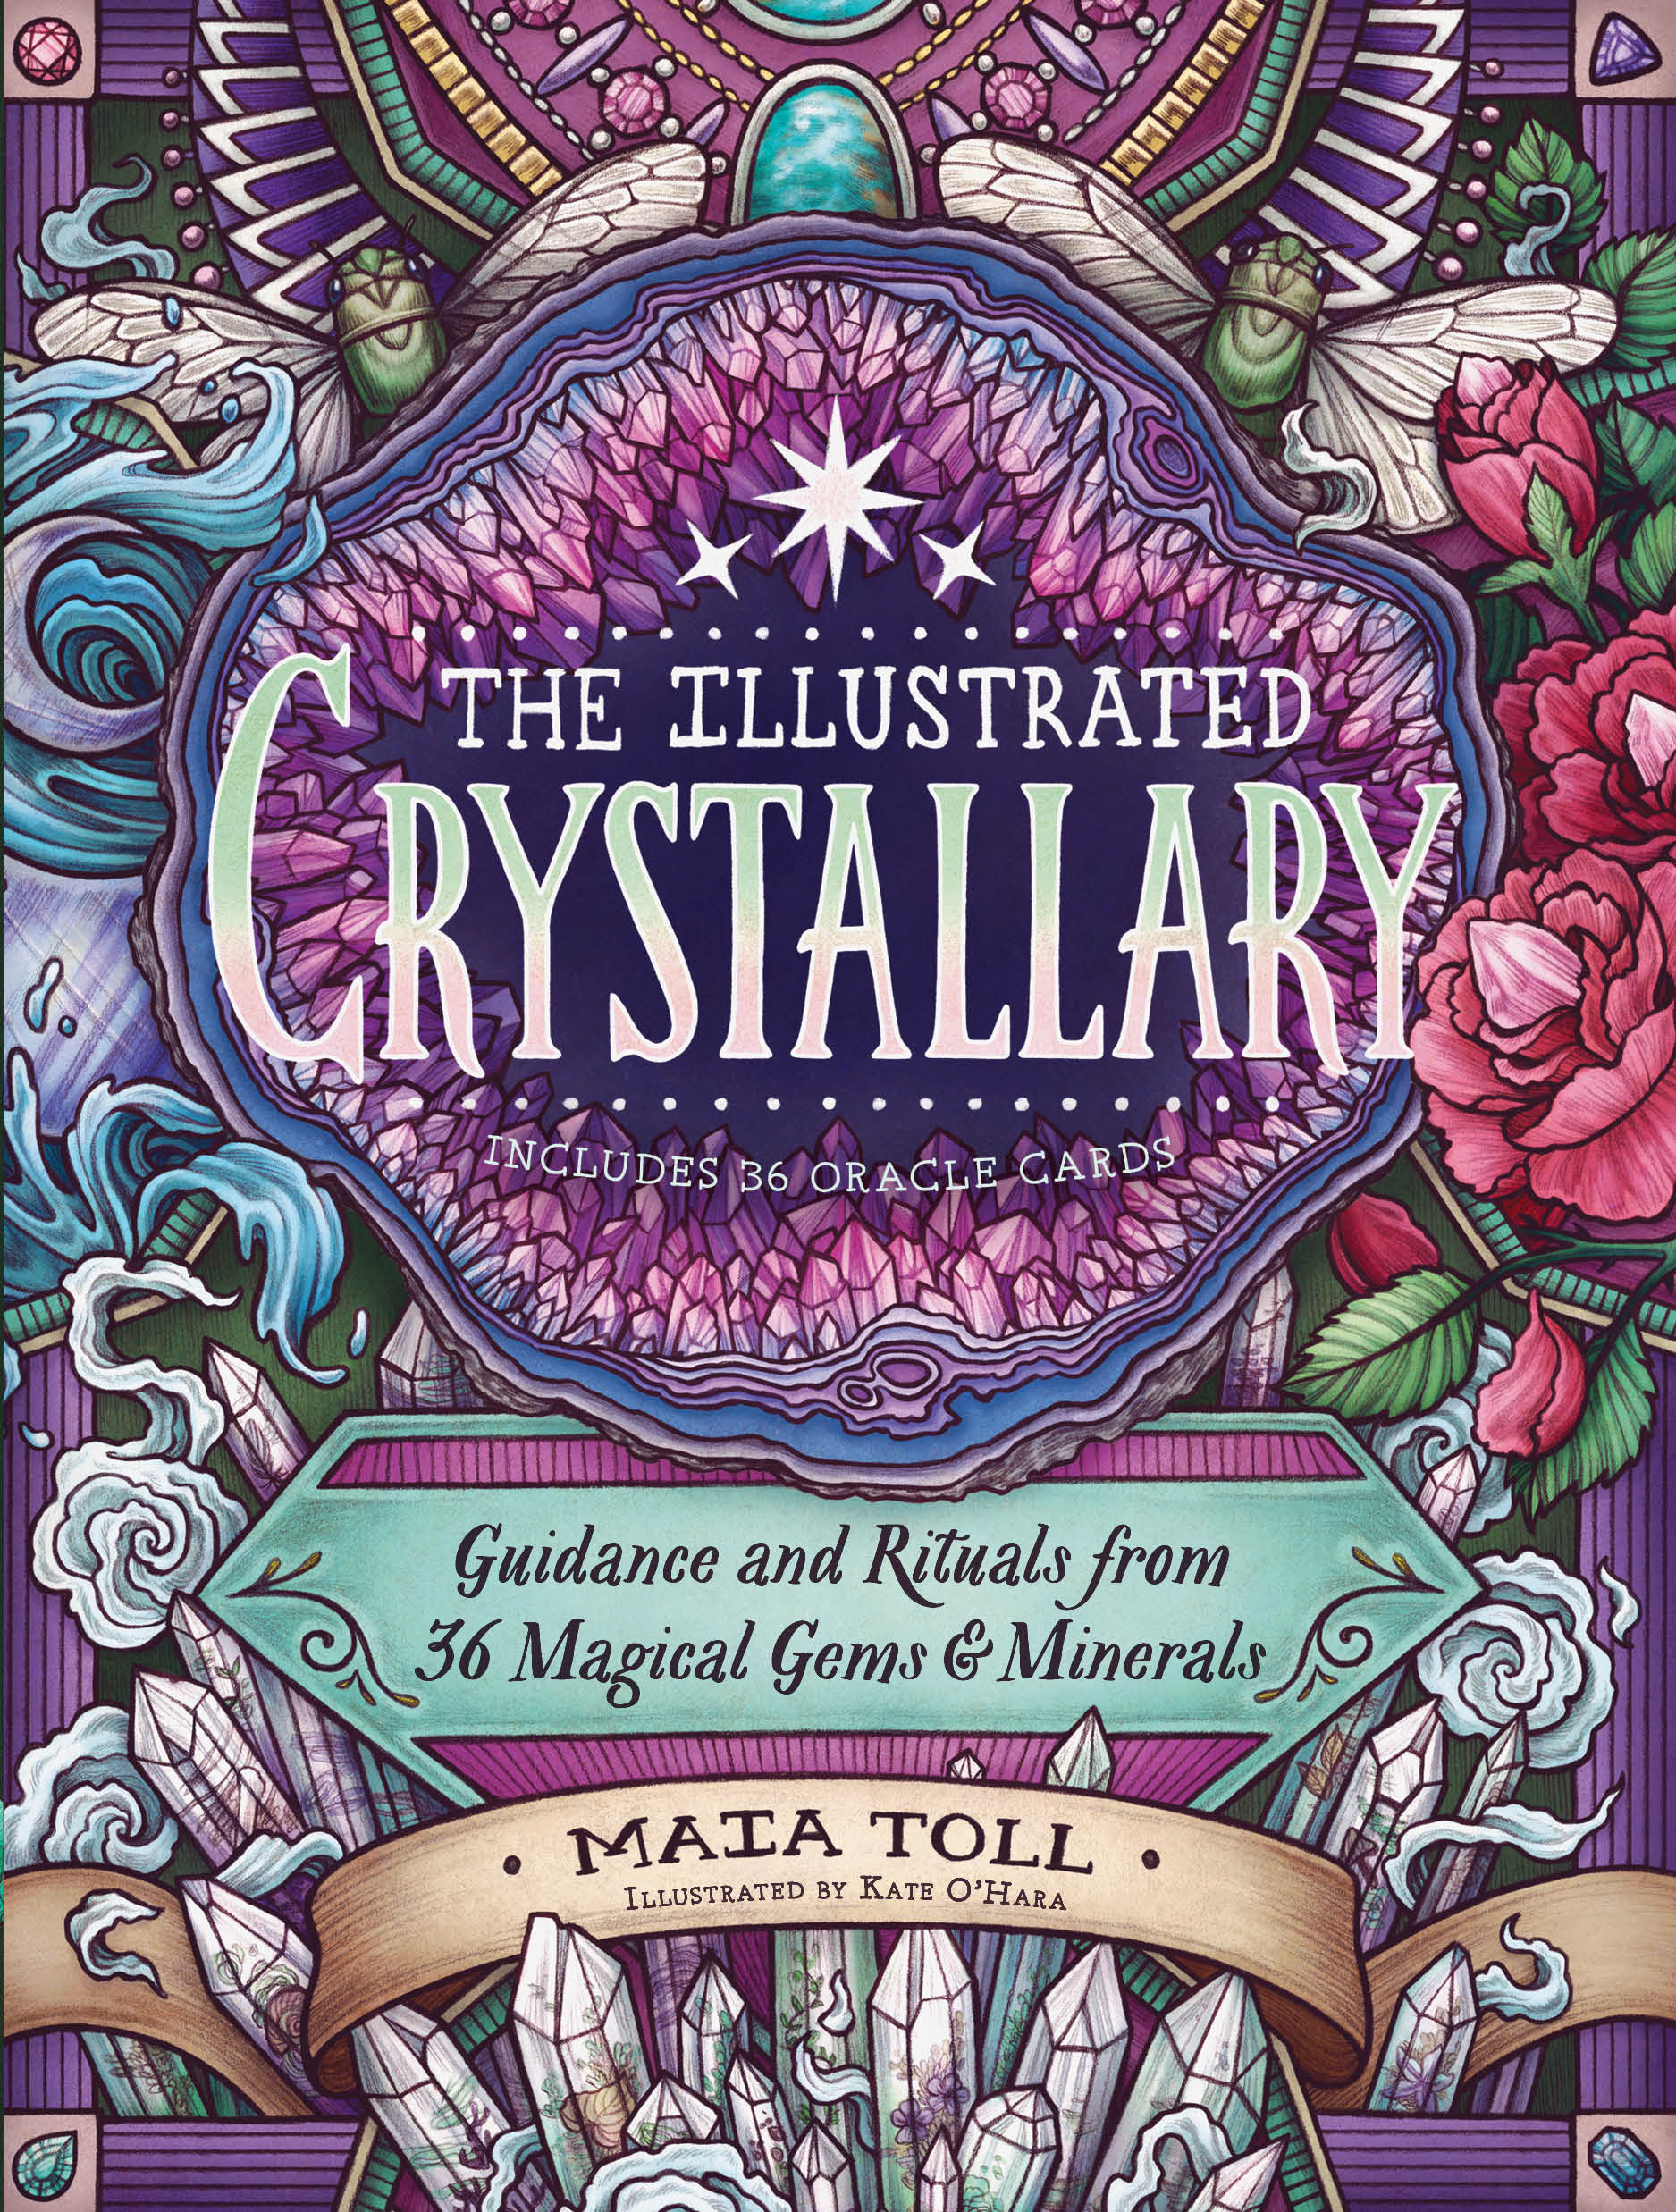 The Illustrated Crystallary Guidance and Rituals from 36 Magical Gems and Minerals - Maia Toll